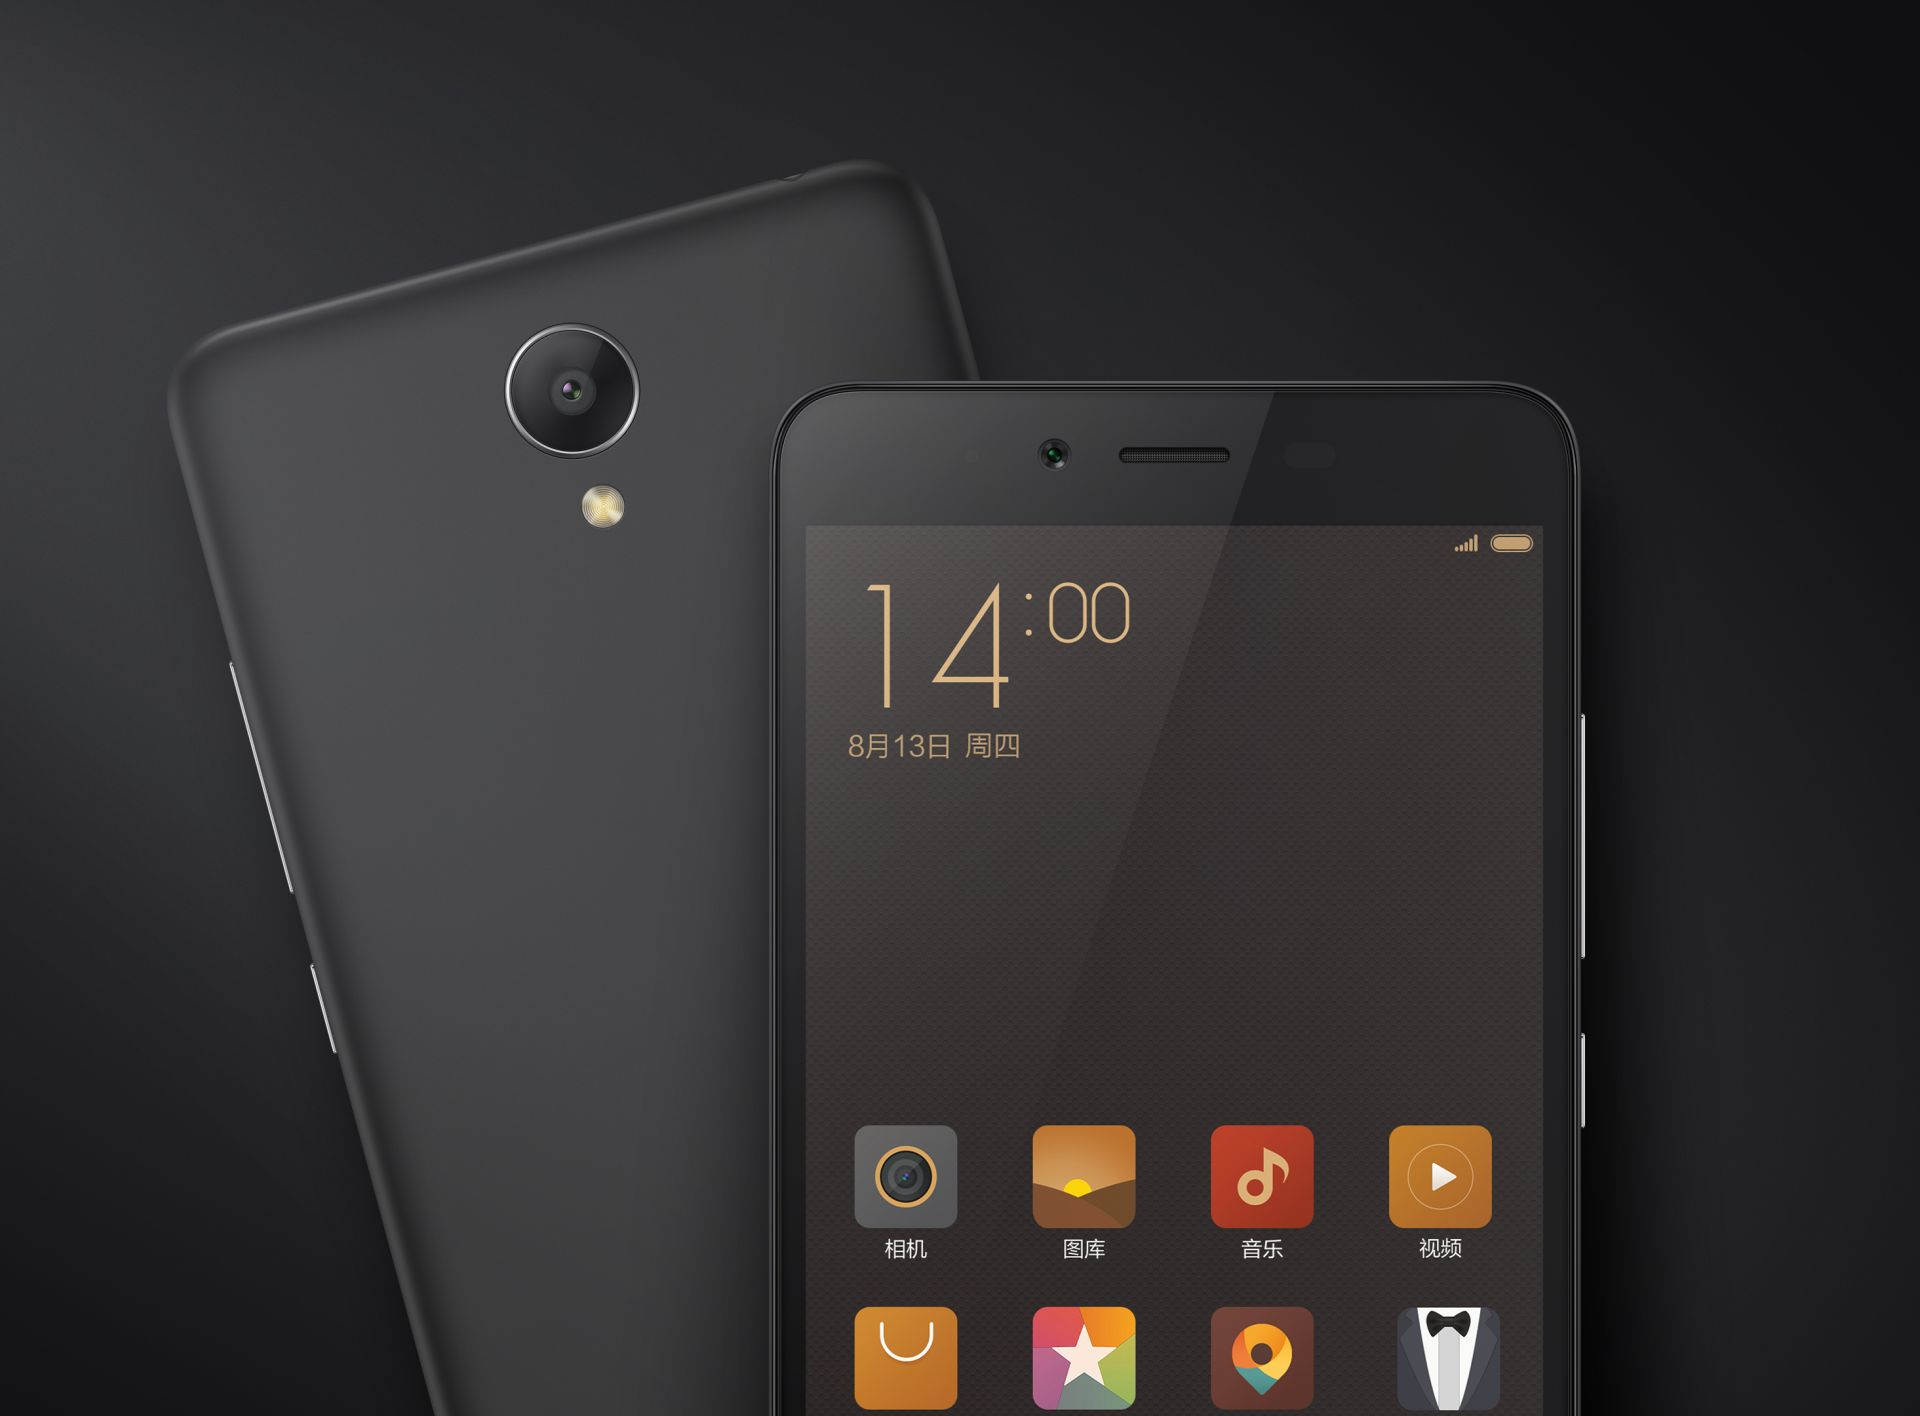 redmi-note-2-c